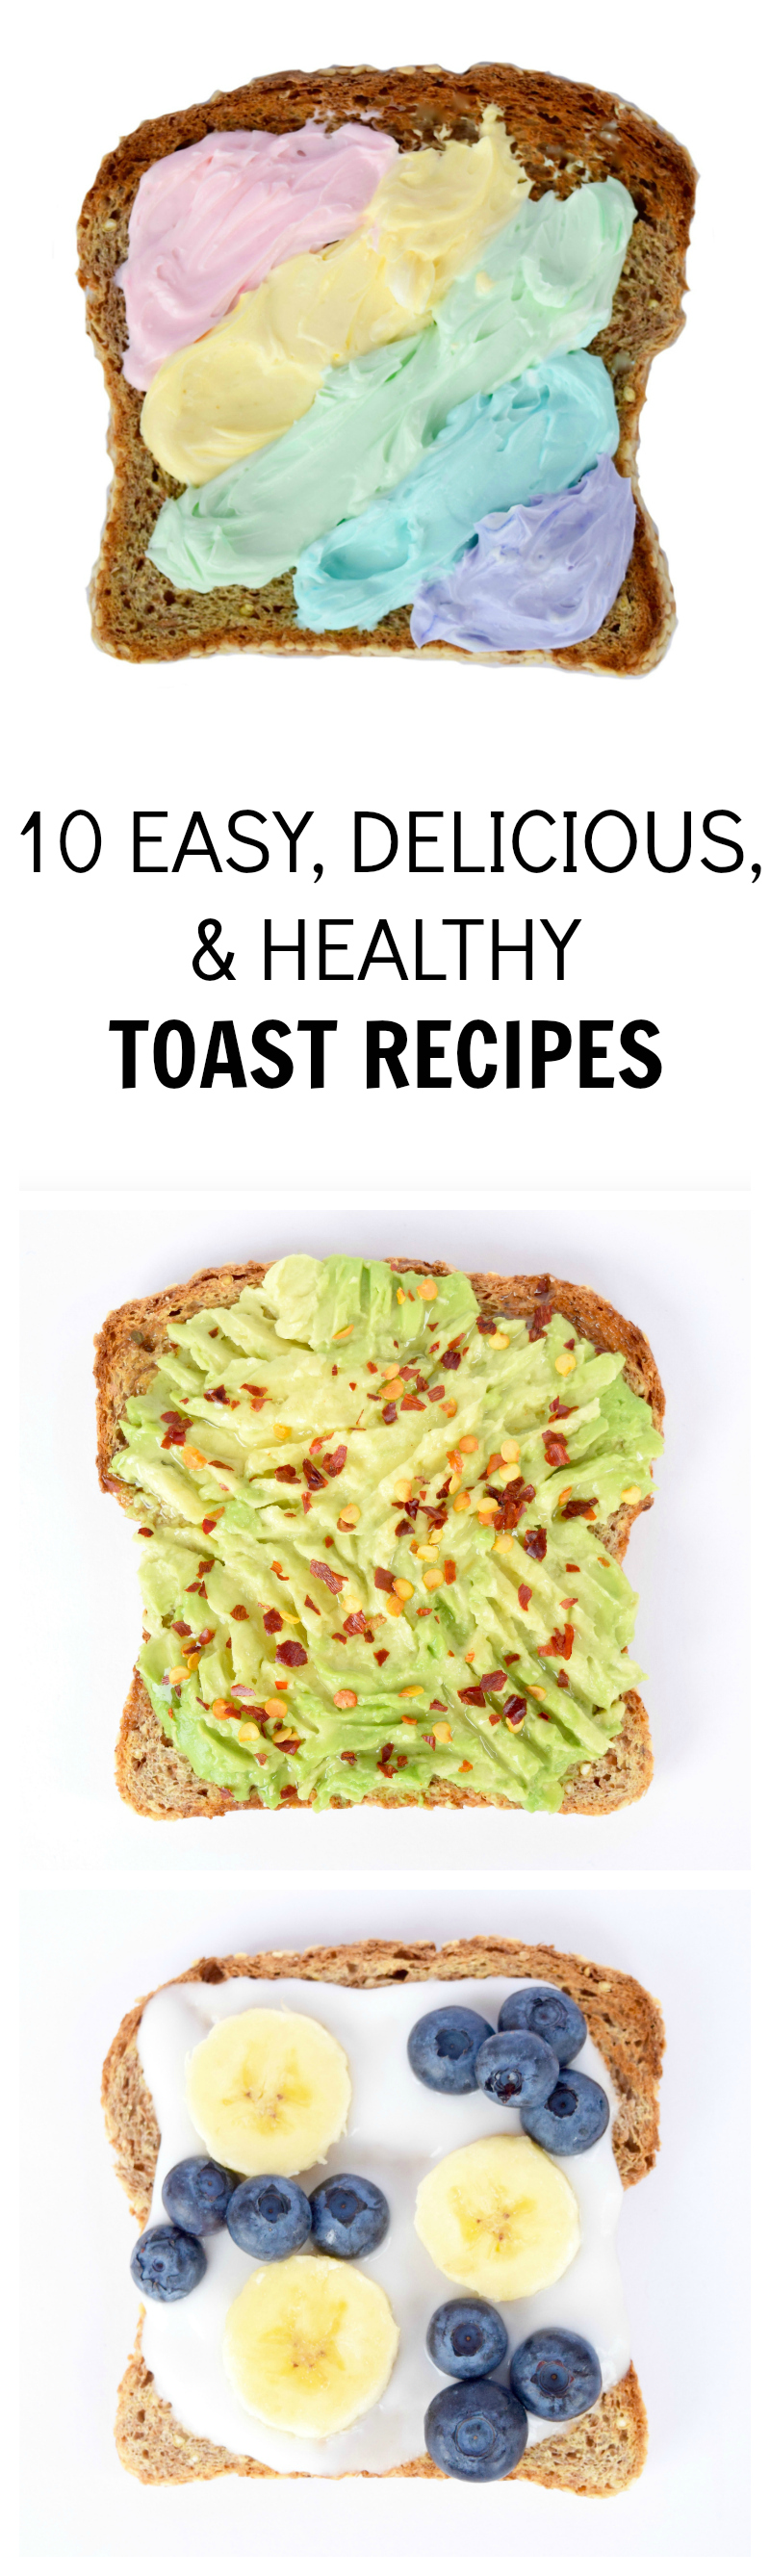 10 EASY DELICIOUS AND HEALTHY TOAST RECIPES